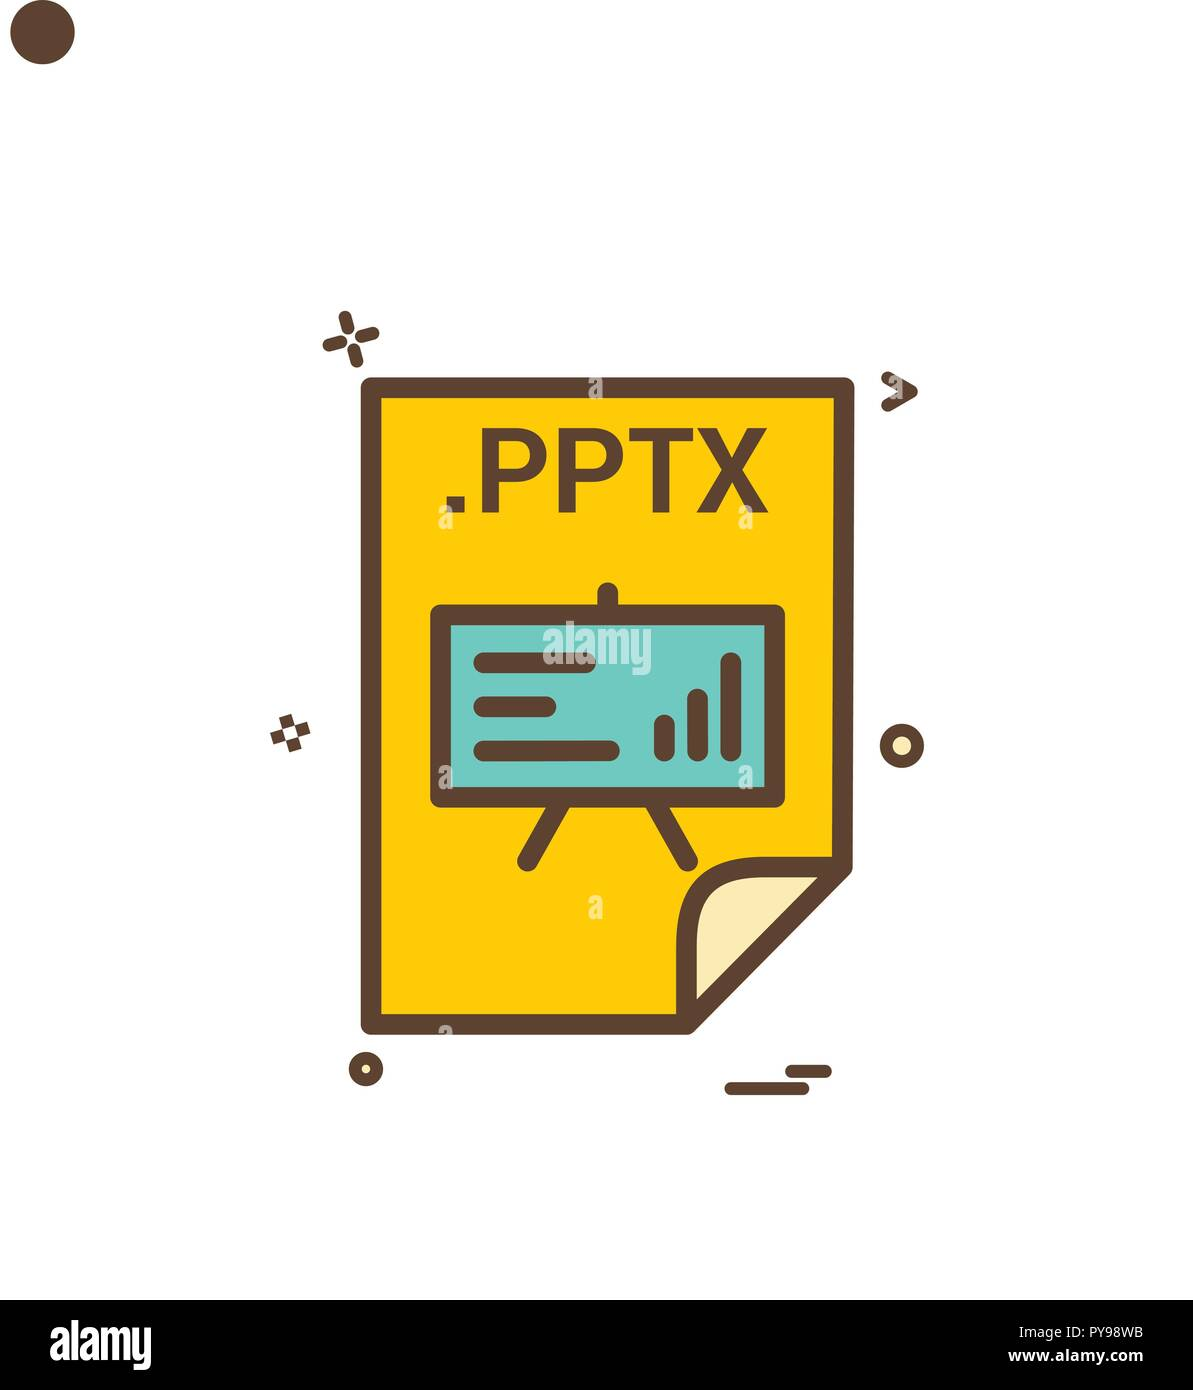 pptx application download file files format icon vector design stock